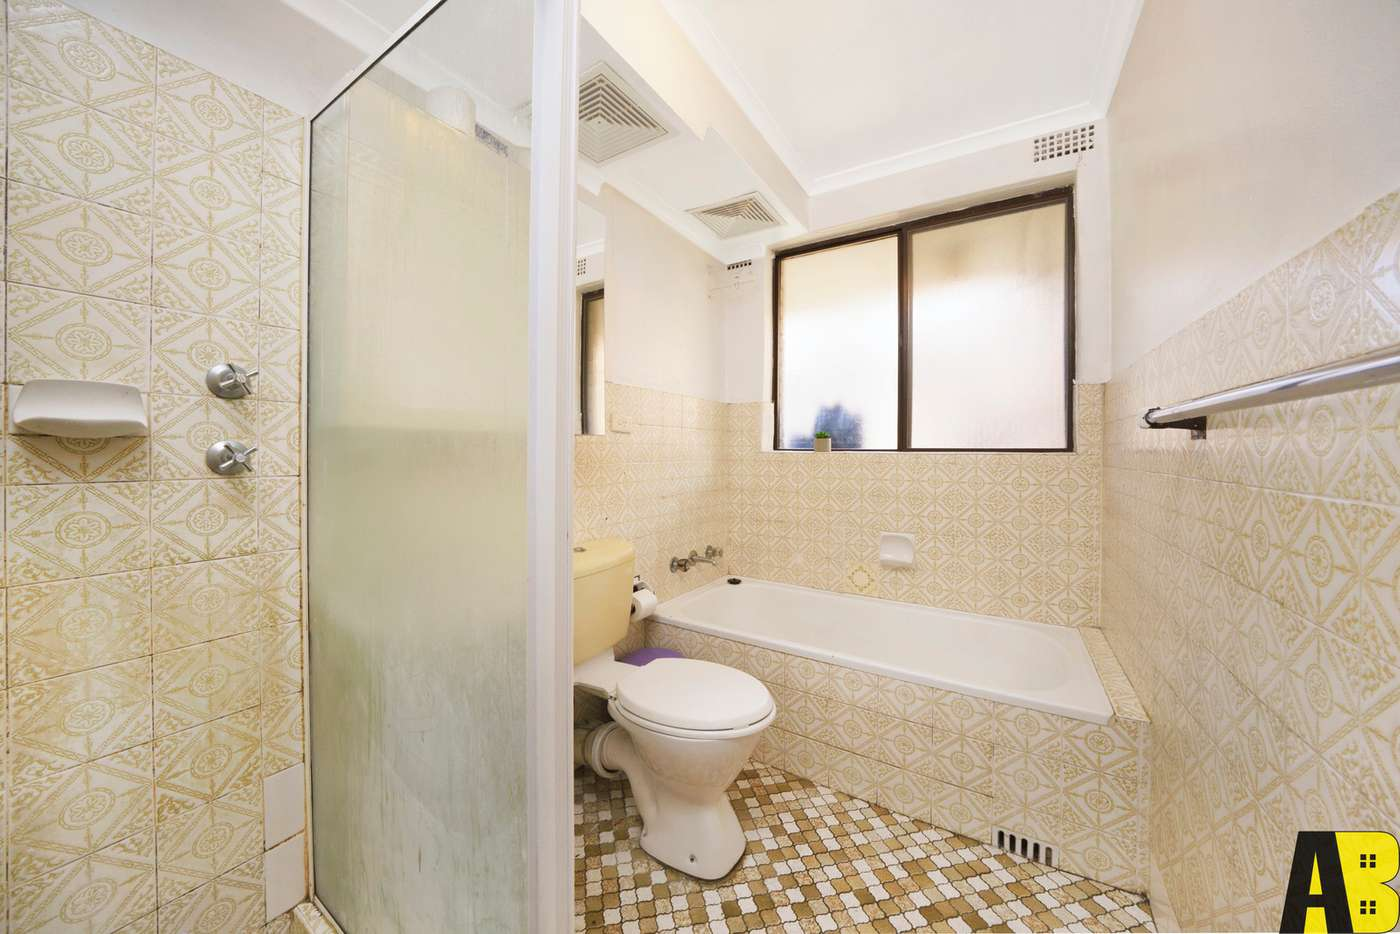 Sixth view of Homely house listing, 3/68 Meehan Street, Granville NSW 2142